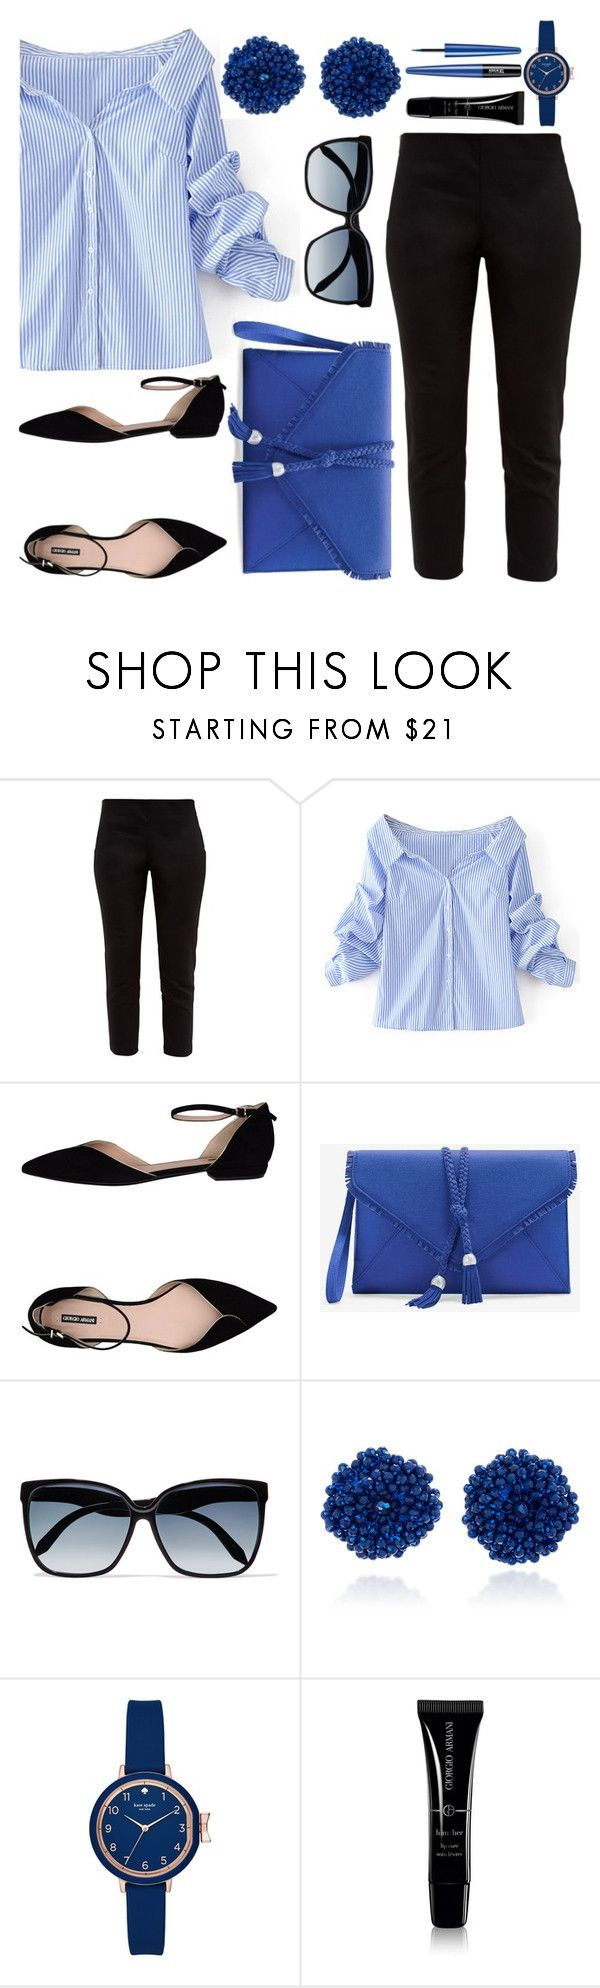 """""""casual blue and black"""" by ayiarundhati ❤ liked on Polyvore featuring Ted Baker, WithChic, Giorgio Armani, White House Black Market, Victoria Beckham, Bibi Marini, Kate Spade, casual, black and Blue"""